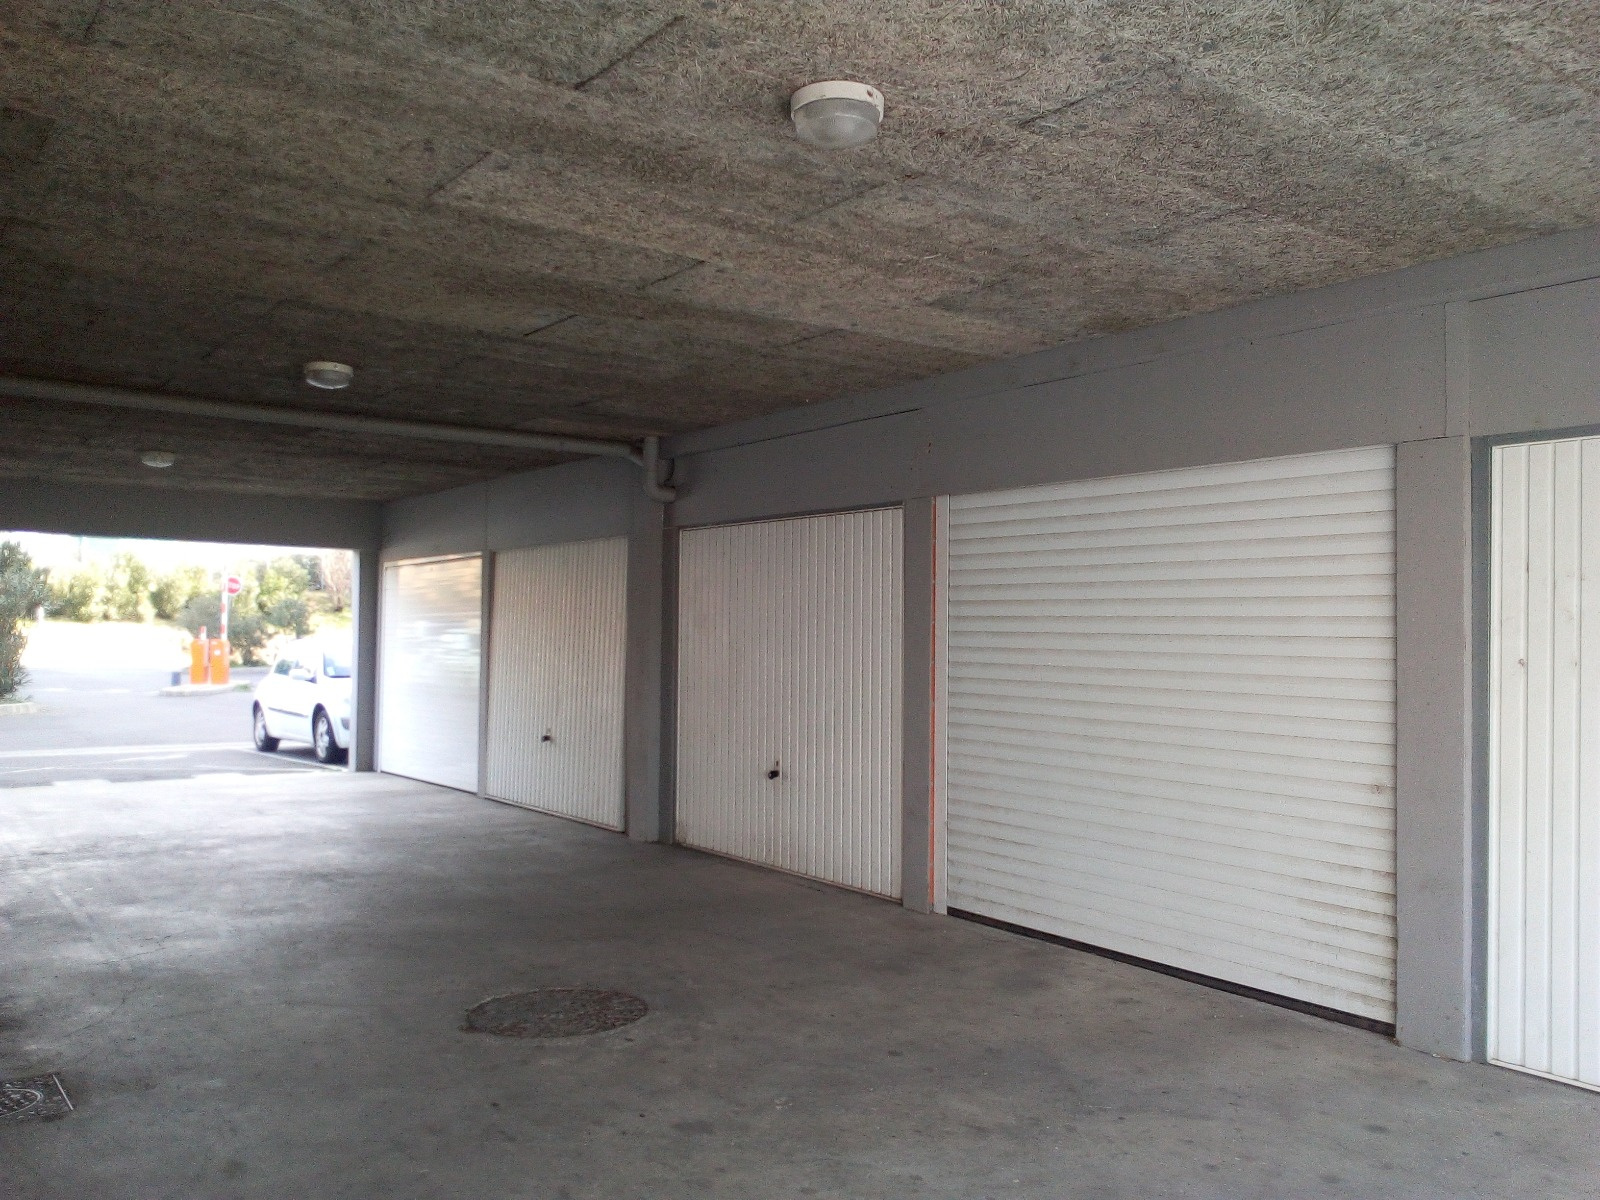 Vente garage parking b ziers 34500 sur le partenaire for Vente garage parking angers